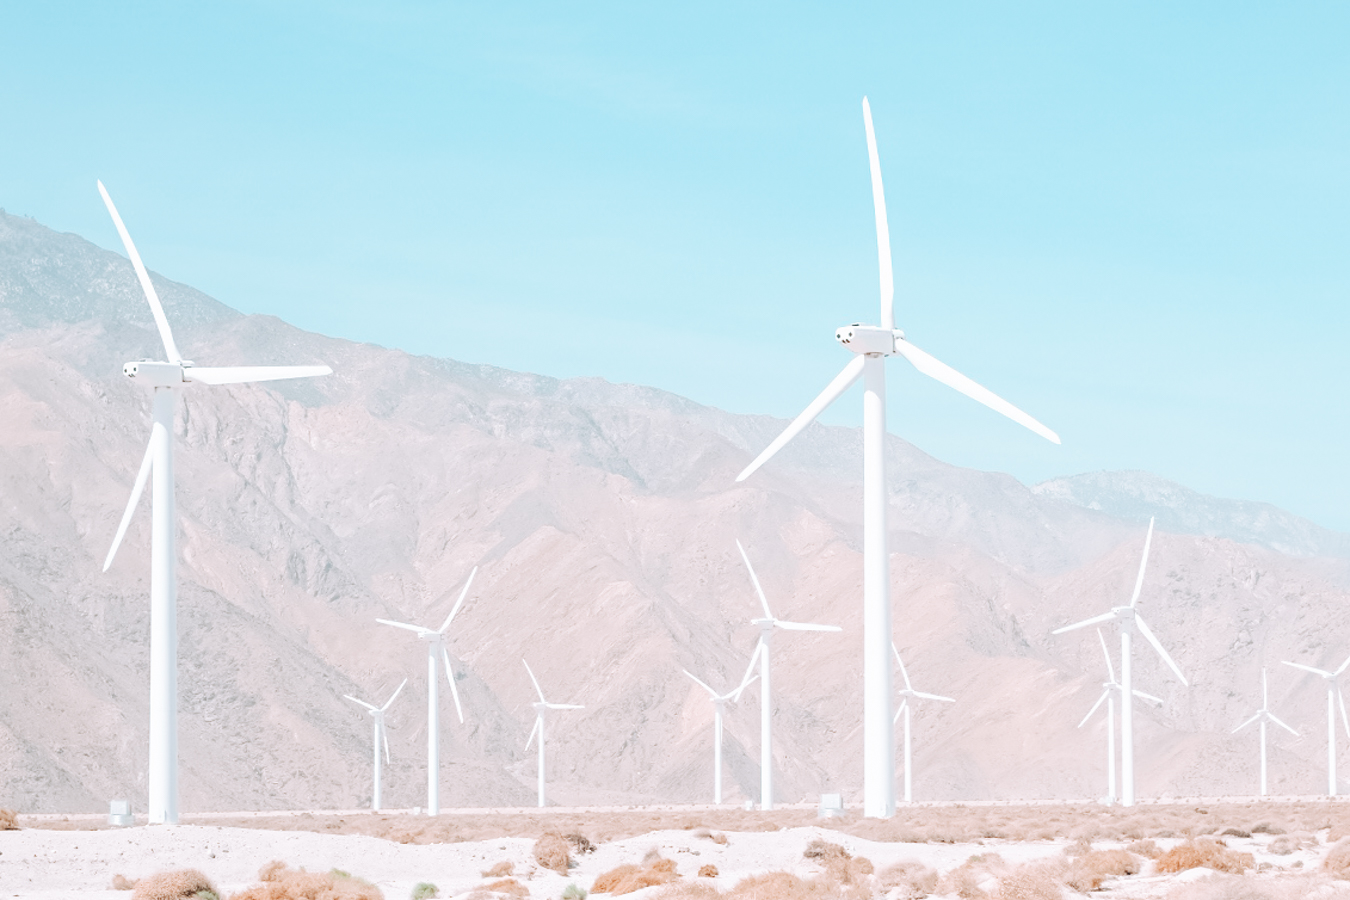 Instagrammable windmills in Palm Springs